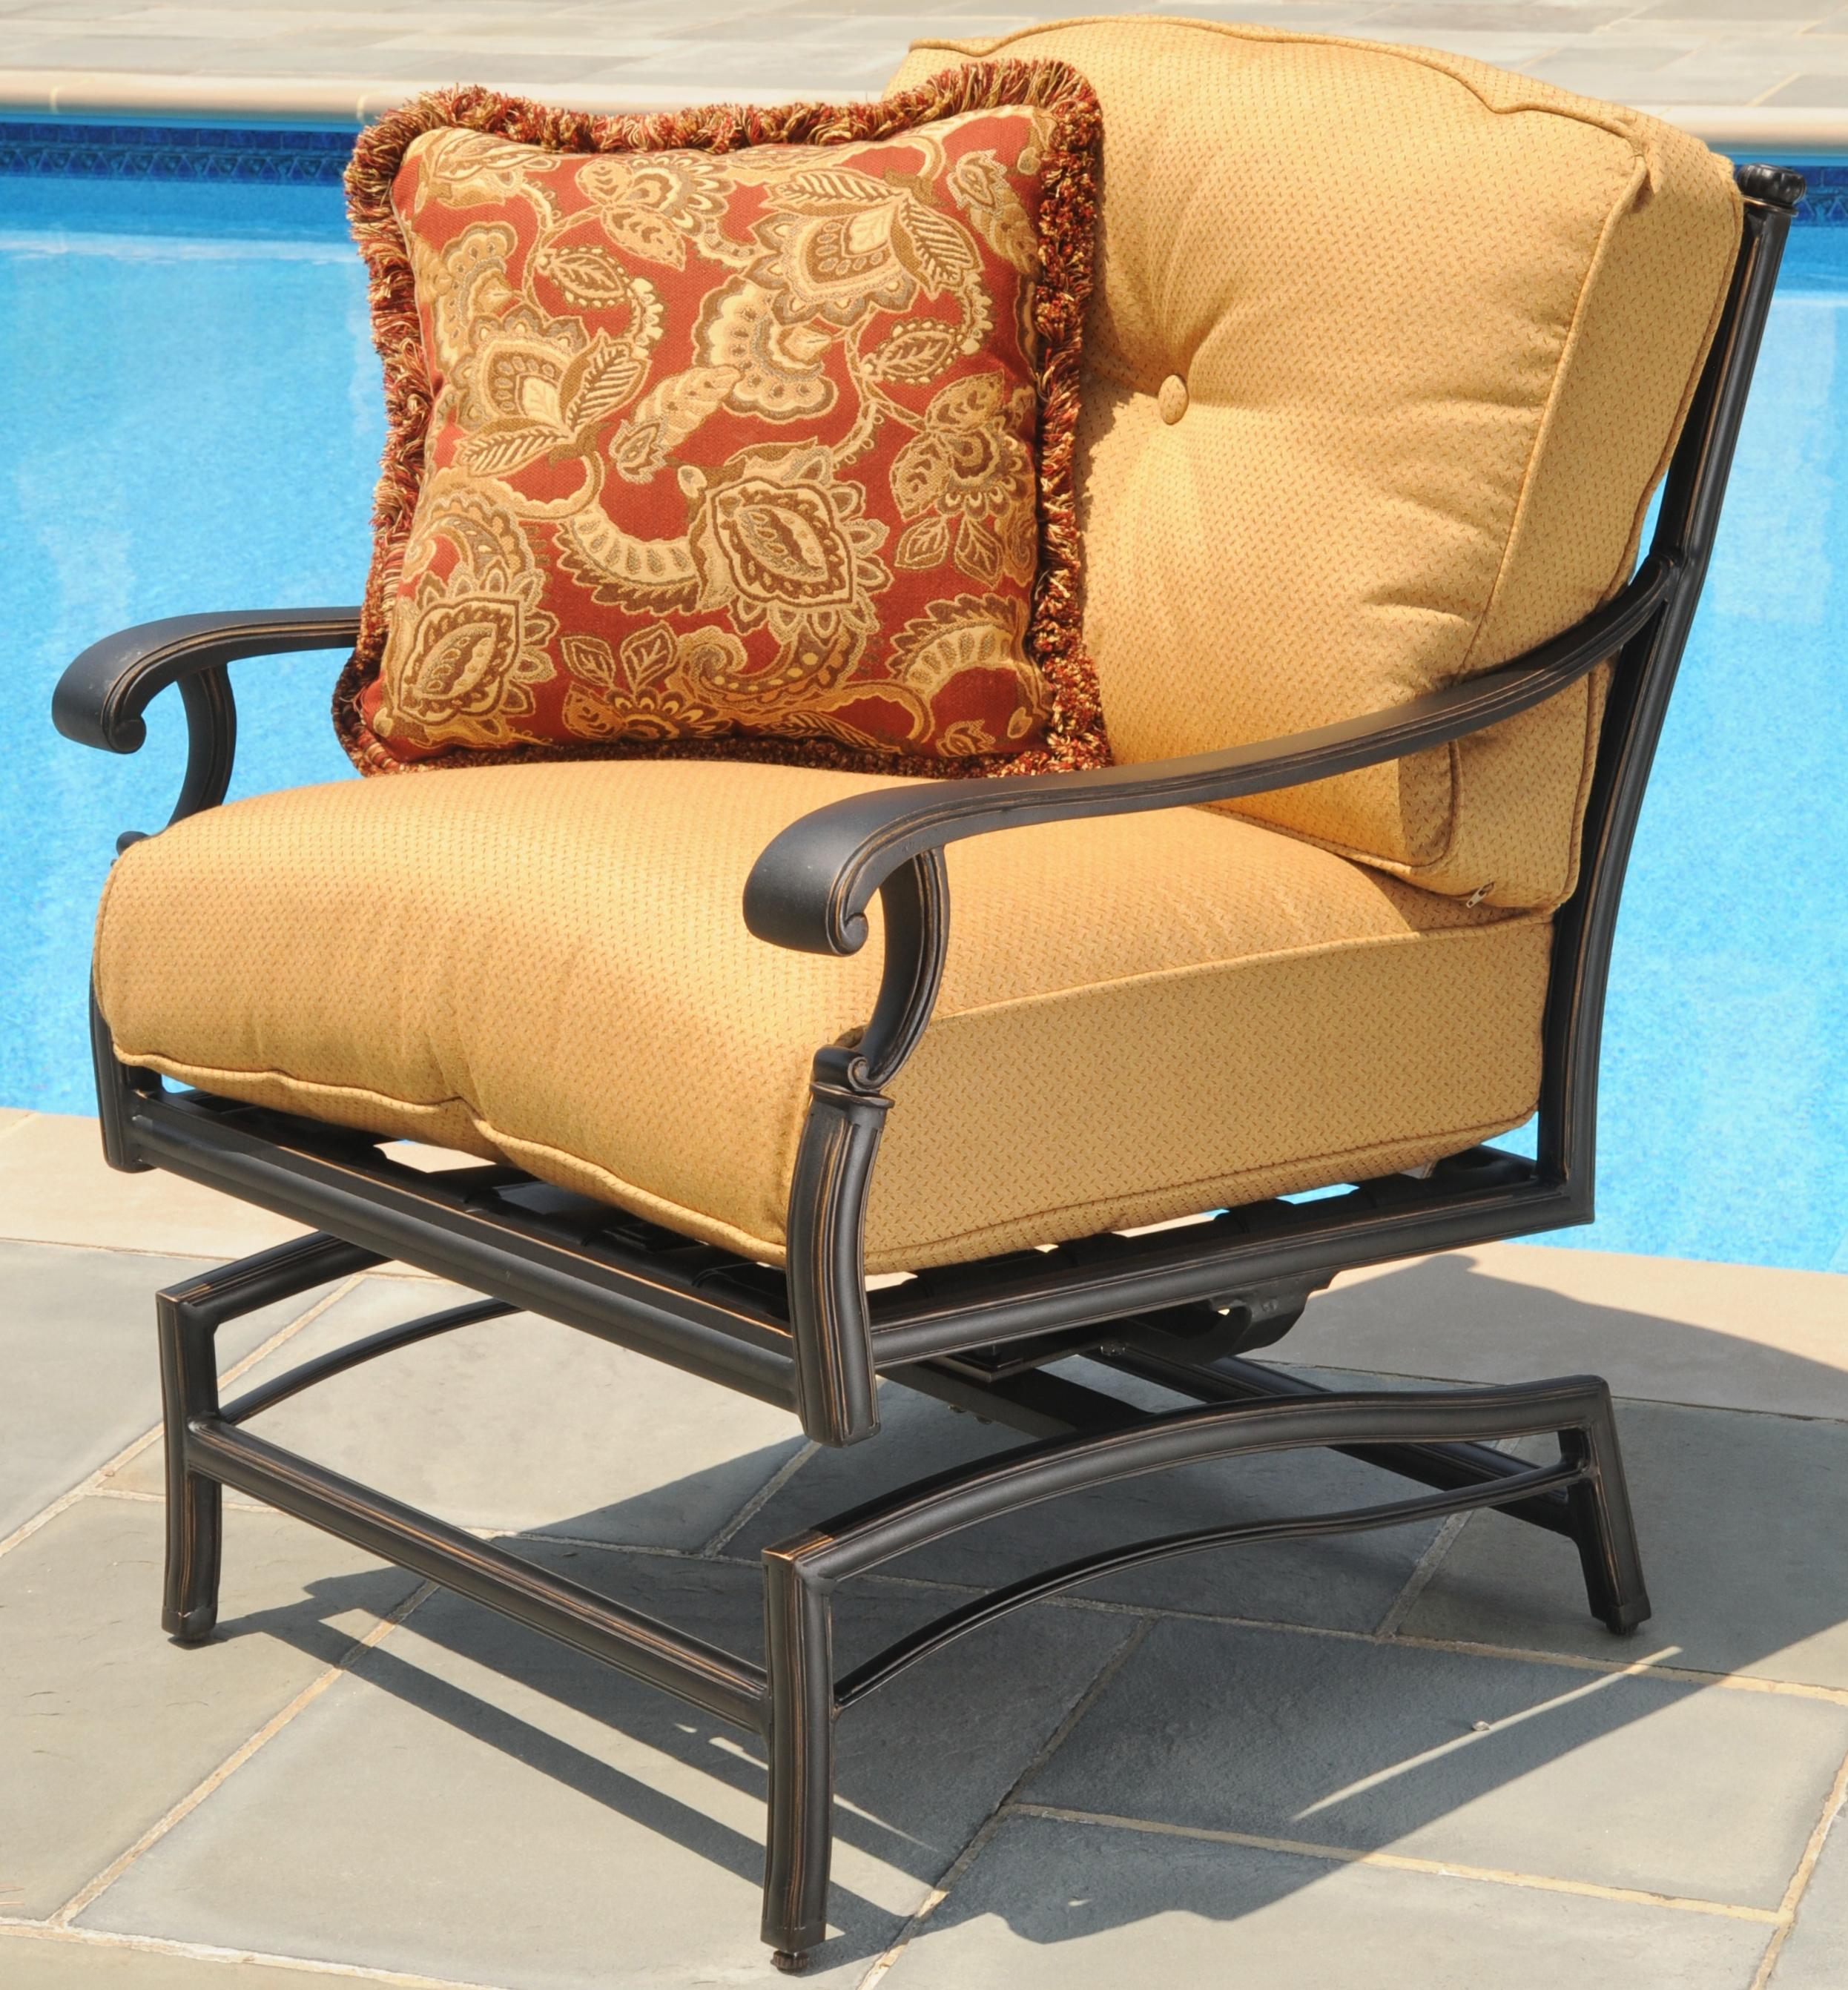 Amalfi Alumicast Outdoor Deep Seat Rocker Chair With One Decorative Throw  Pillow By Agio